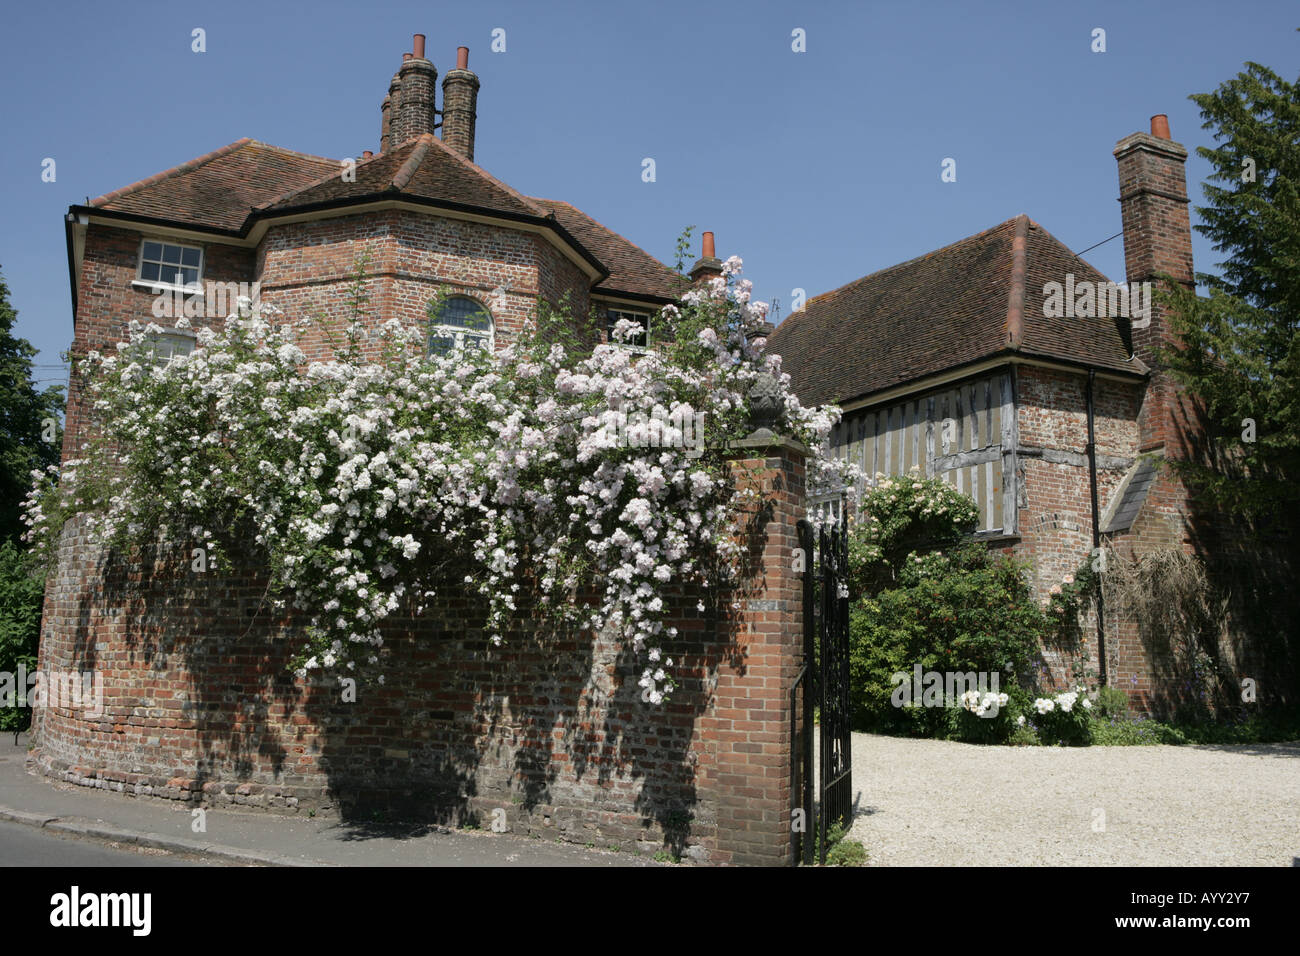 White roses on the wall of a large house in the chilterns village of Little Missenden Stock Photo